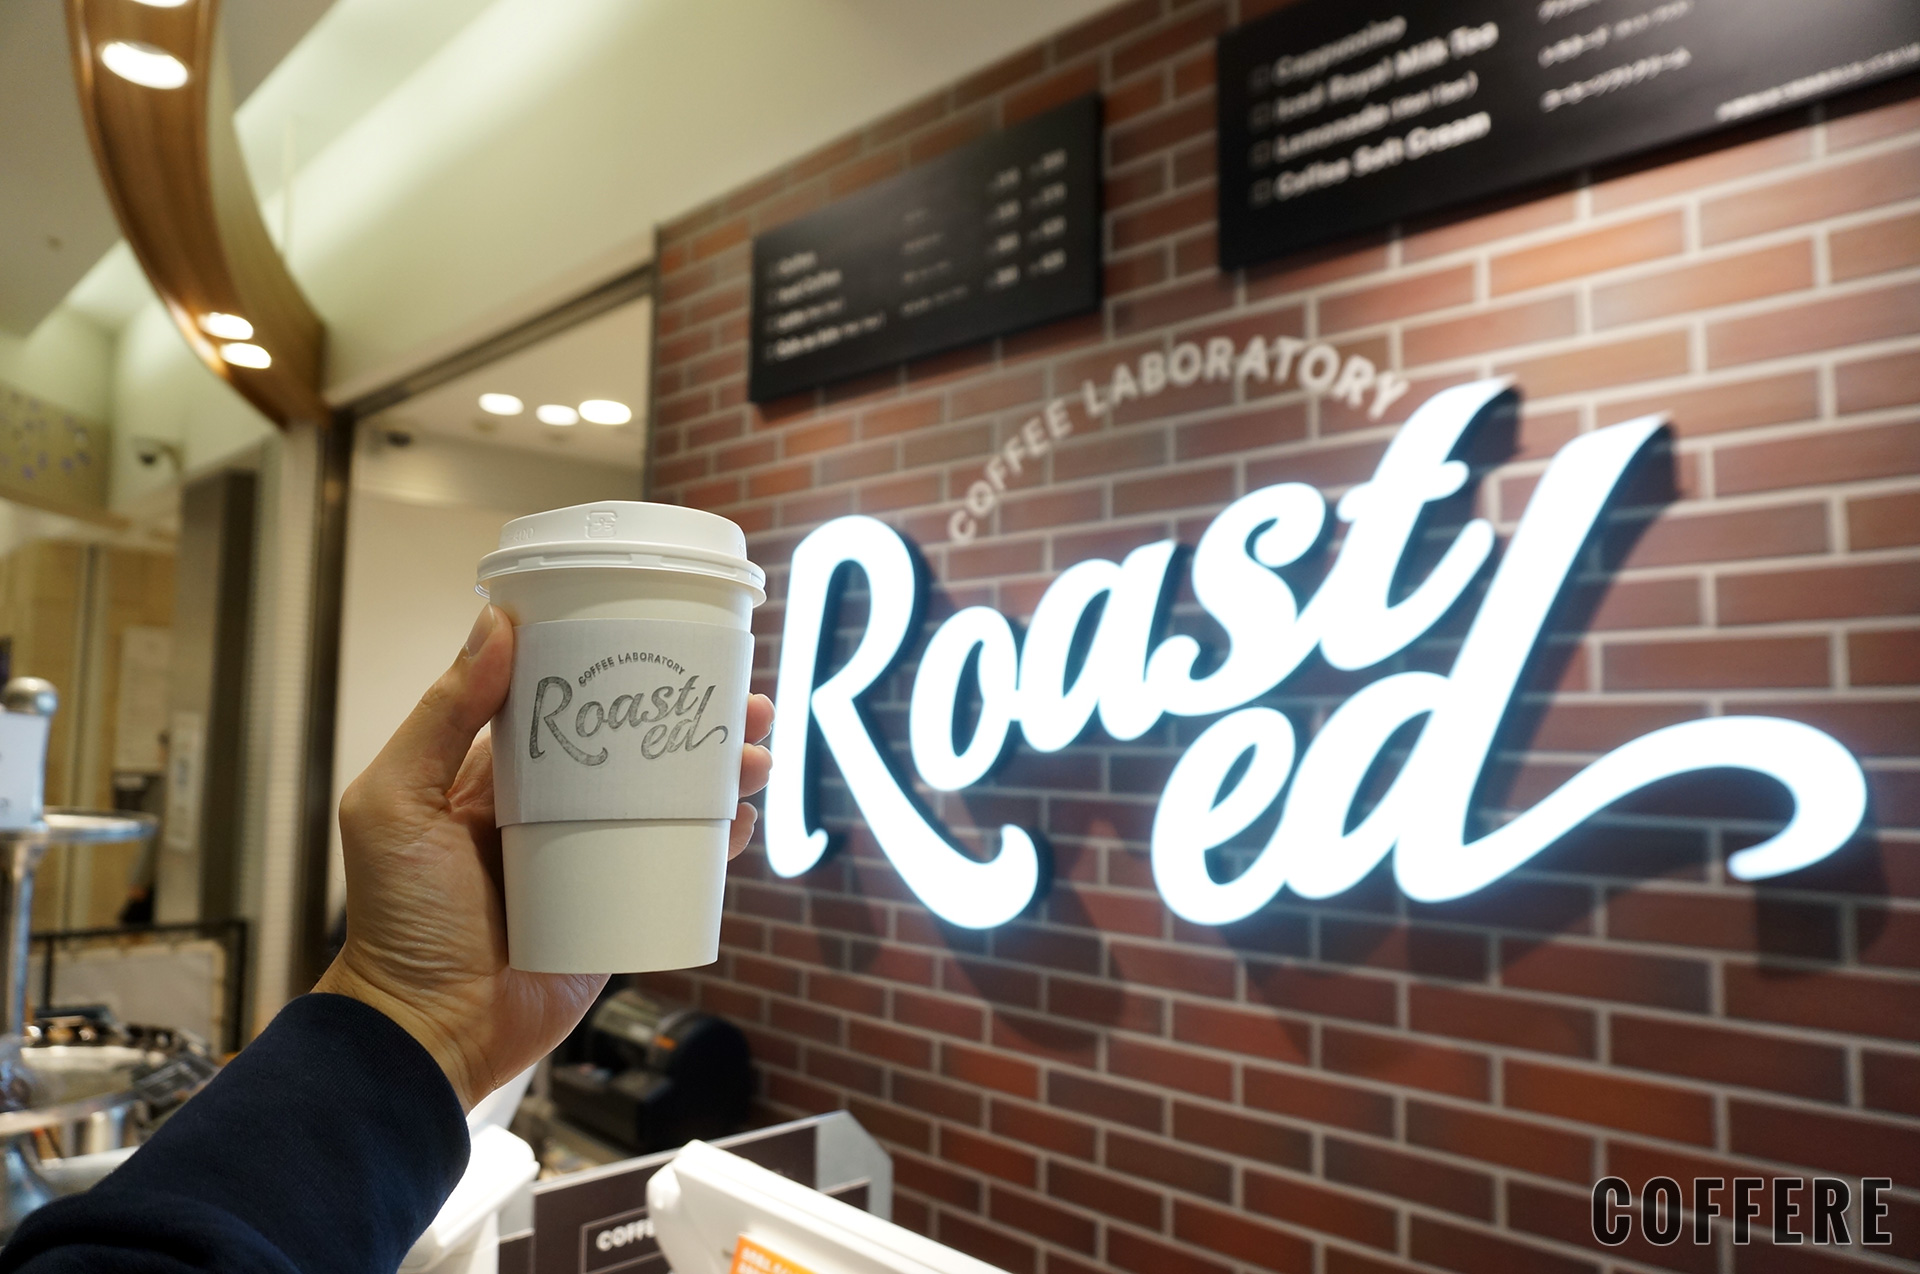 Roasted COFFEE LABORATORY 東急東横店_カップとロゴ